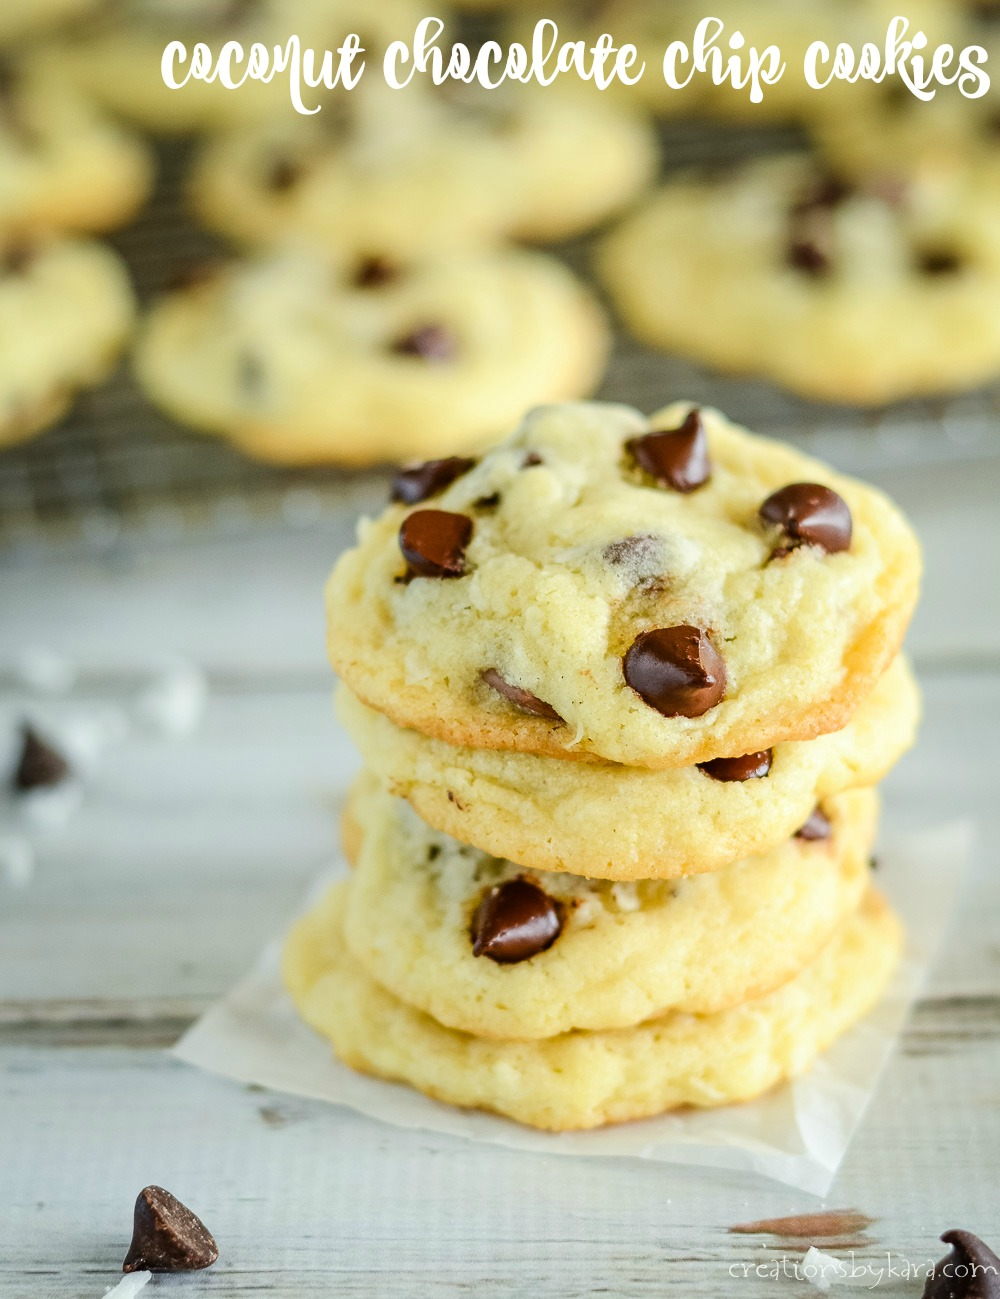 stack of Coconut Chocolate Chip Cookies